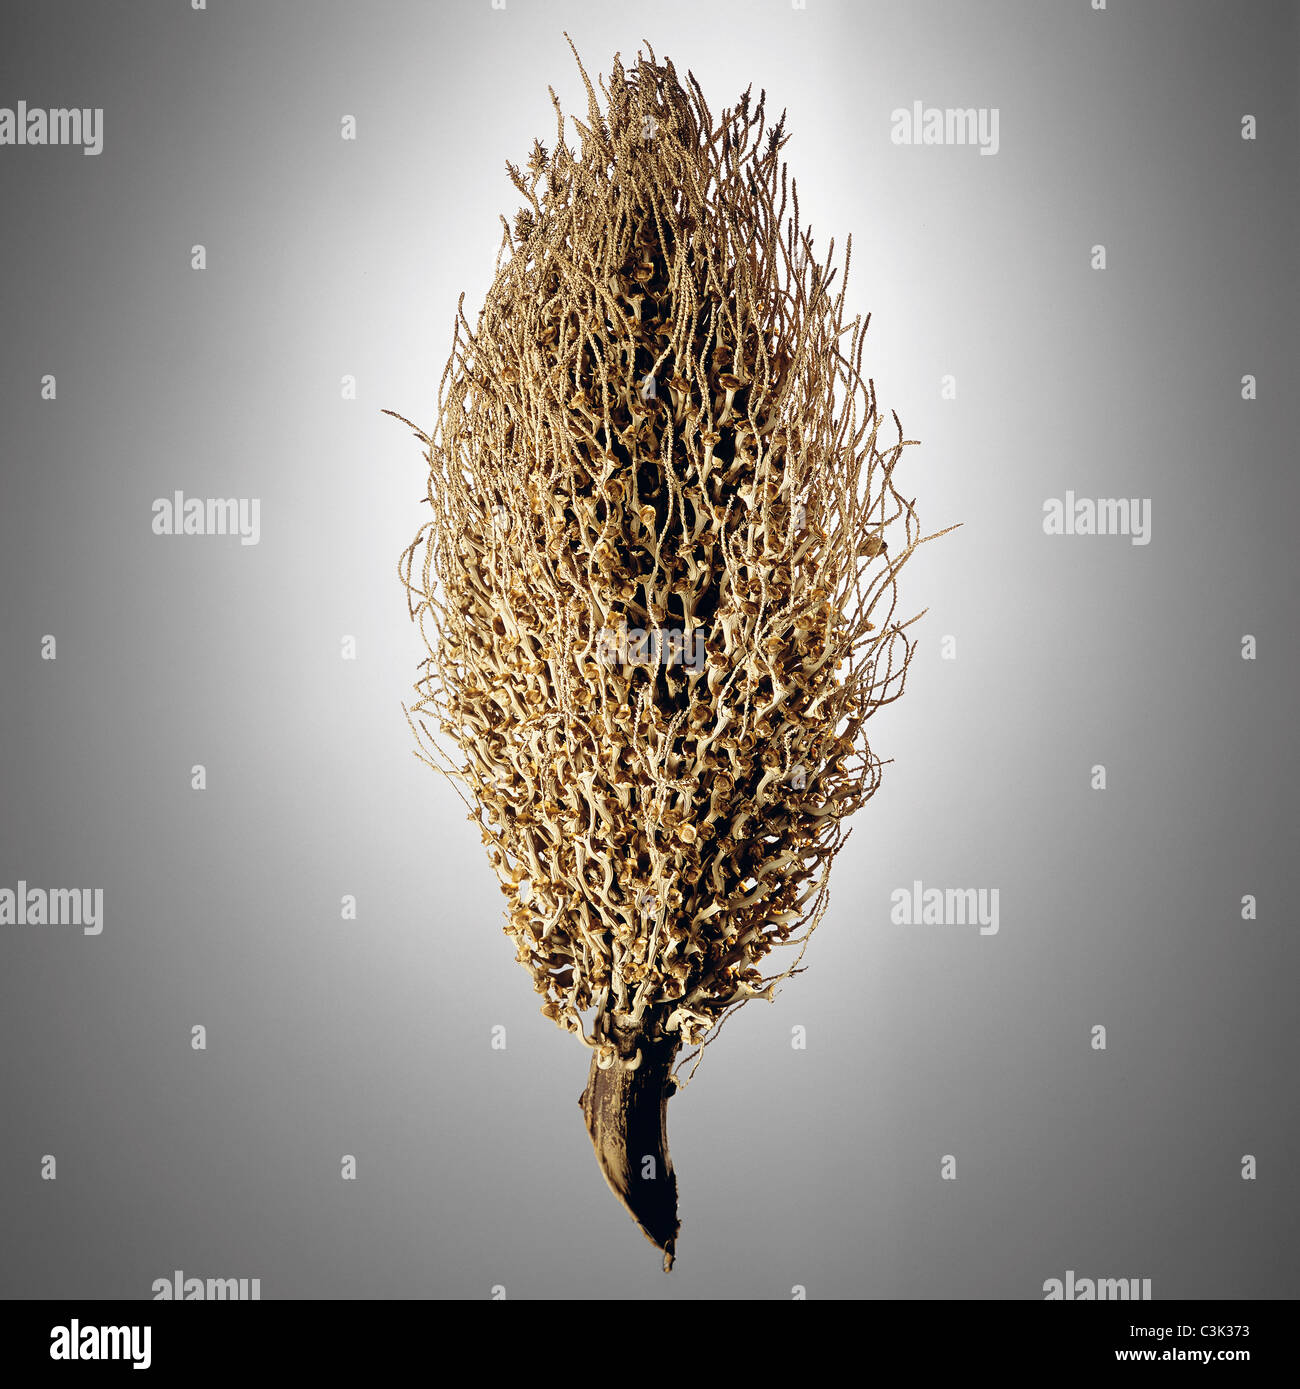 Dried plant, close up - Stock Image